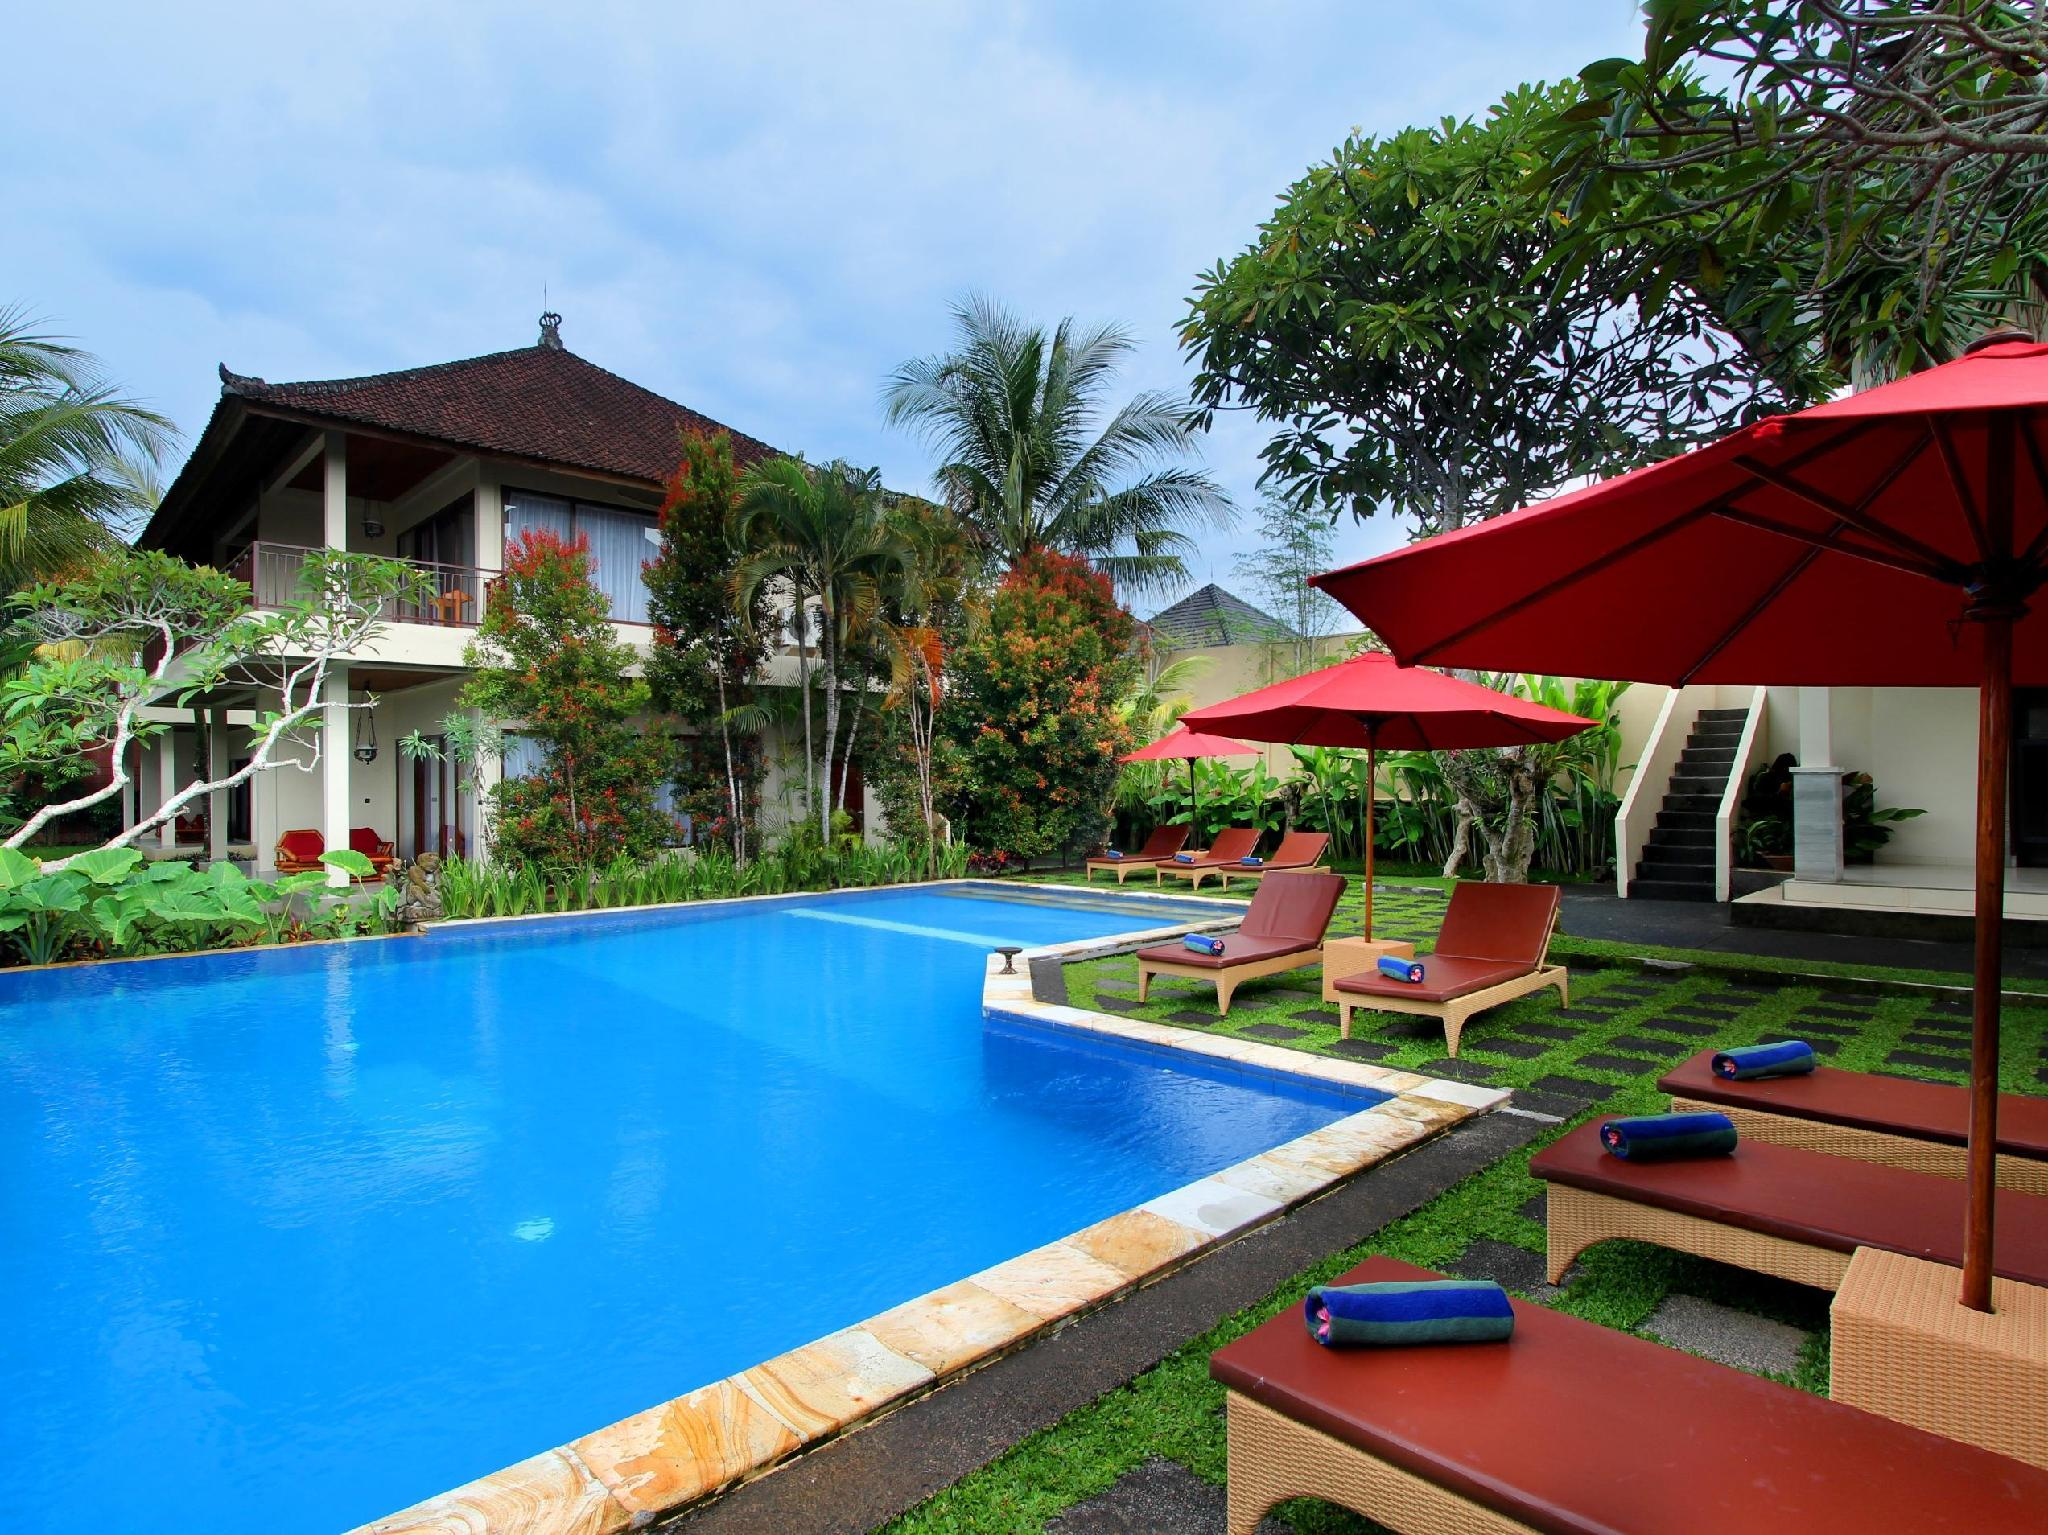 Putri Ayu Cottages Bali - View from swimming pool to Lobby